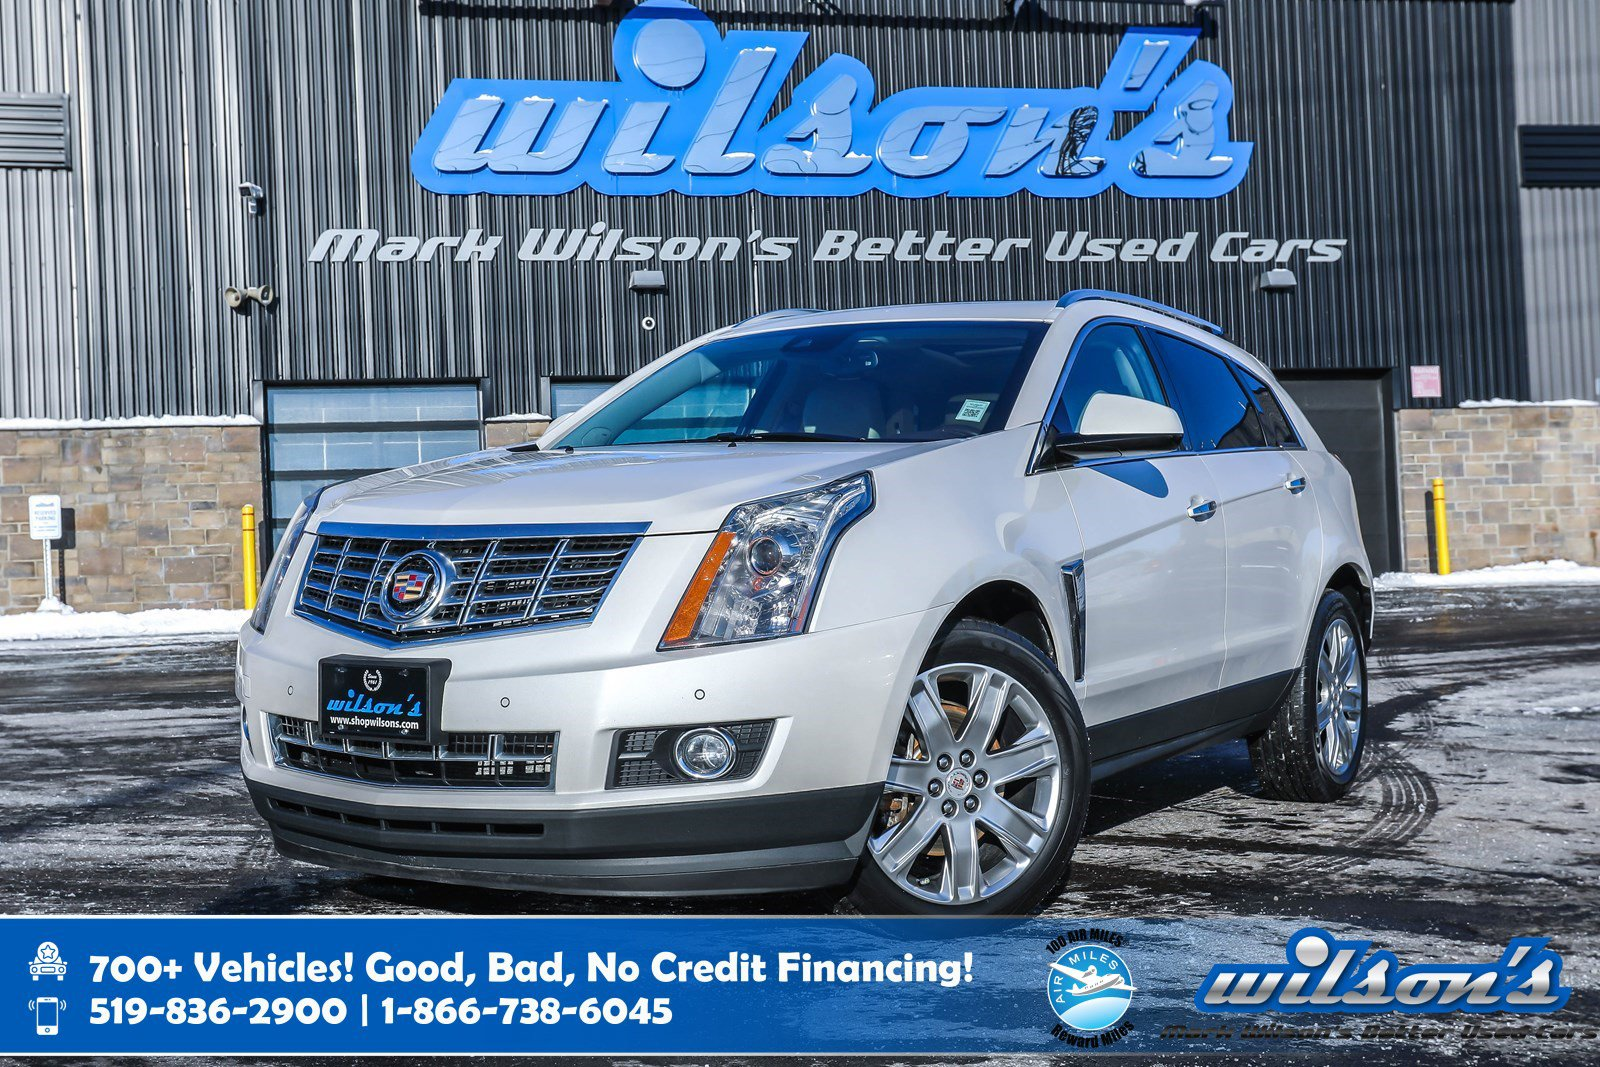 Certified Pre-Owned 2015 Cadillac SRX Premium AWD, Leather, Navigation, Sunroof, DVD, Heated + Cooled Seats, Heated Steering and more!